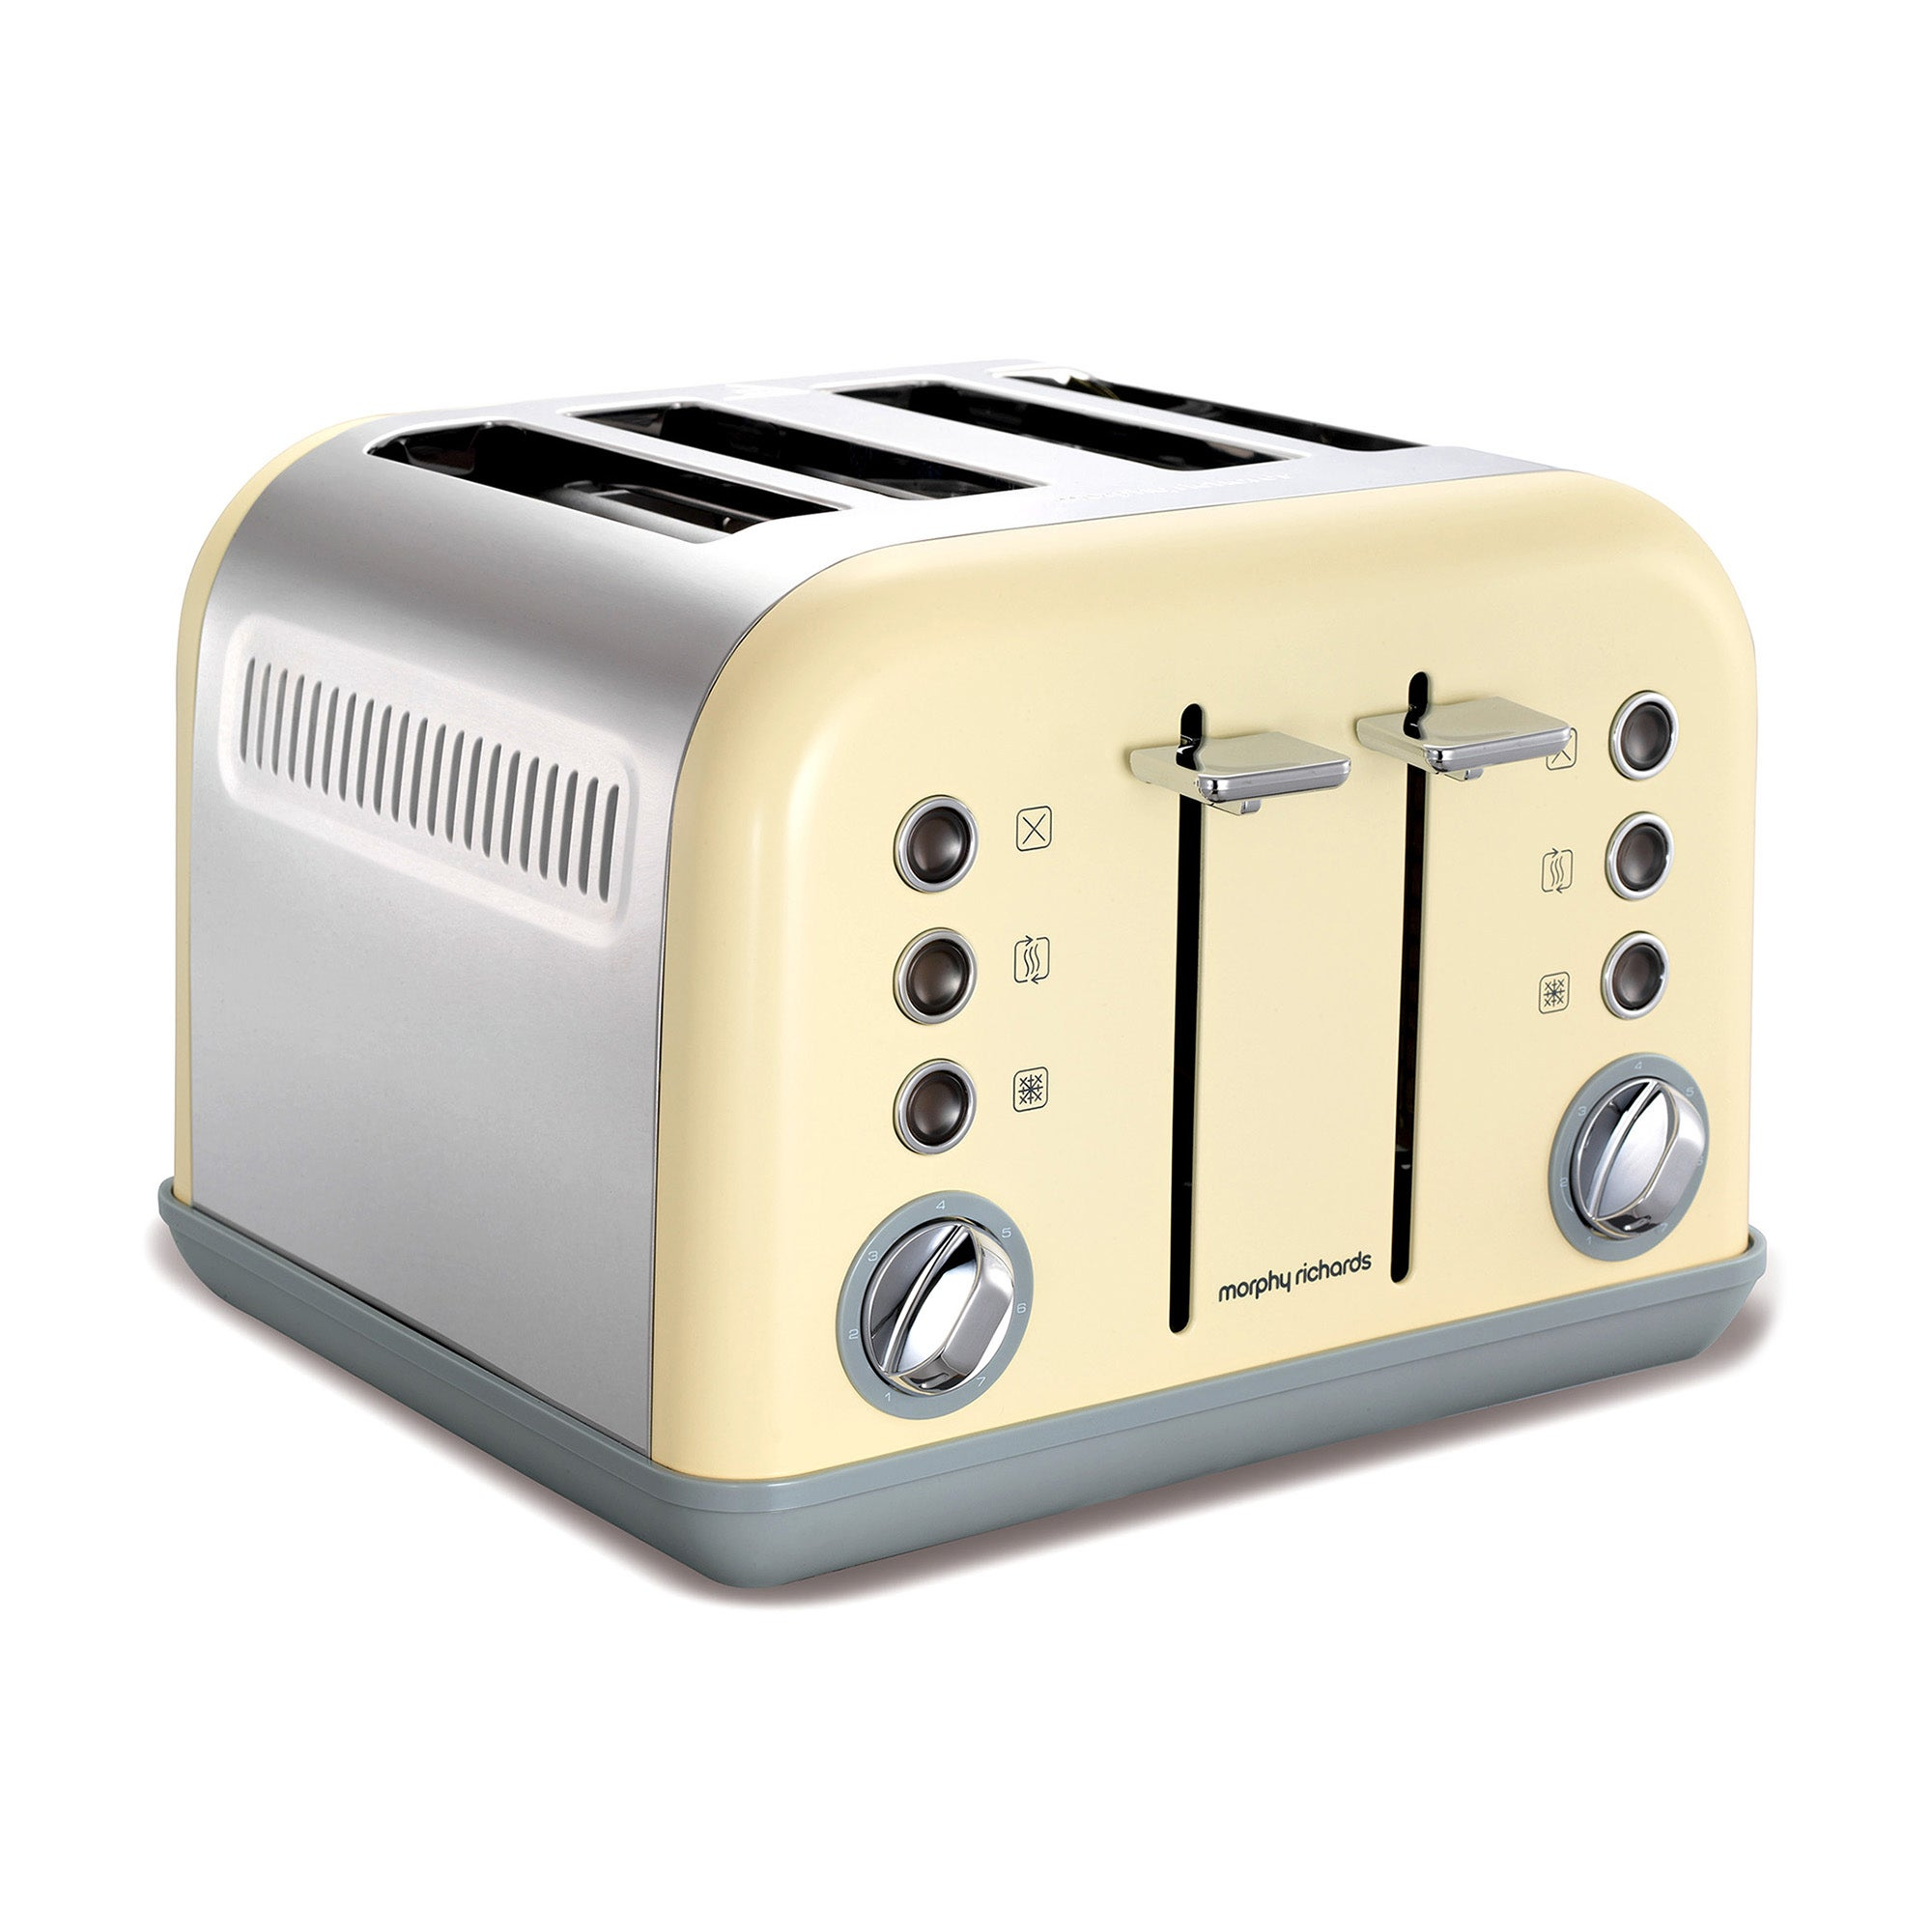 Morphy Richards Accents 242003 Cream 4 Slice Toaster